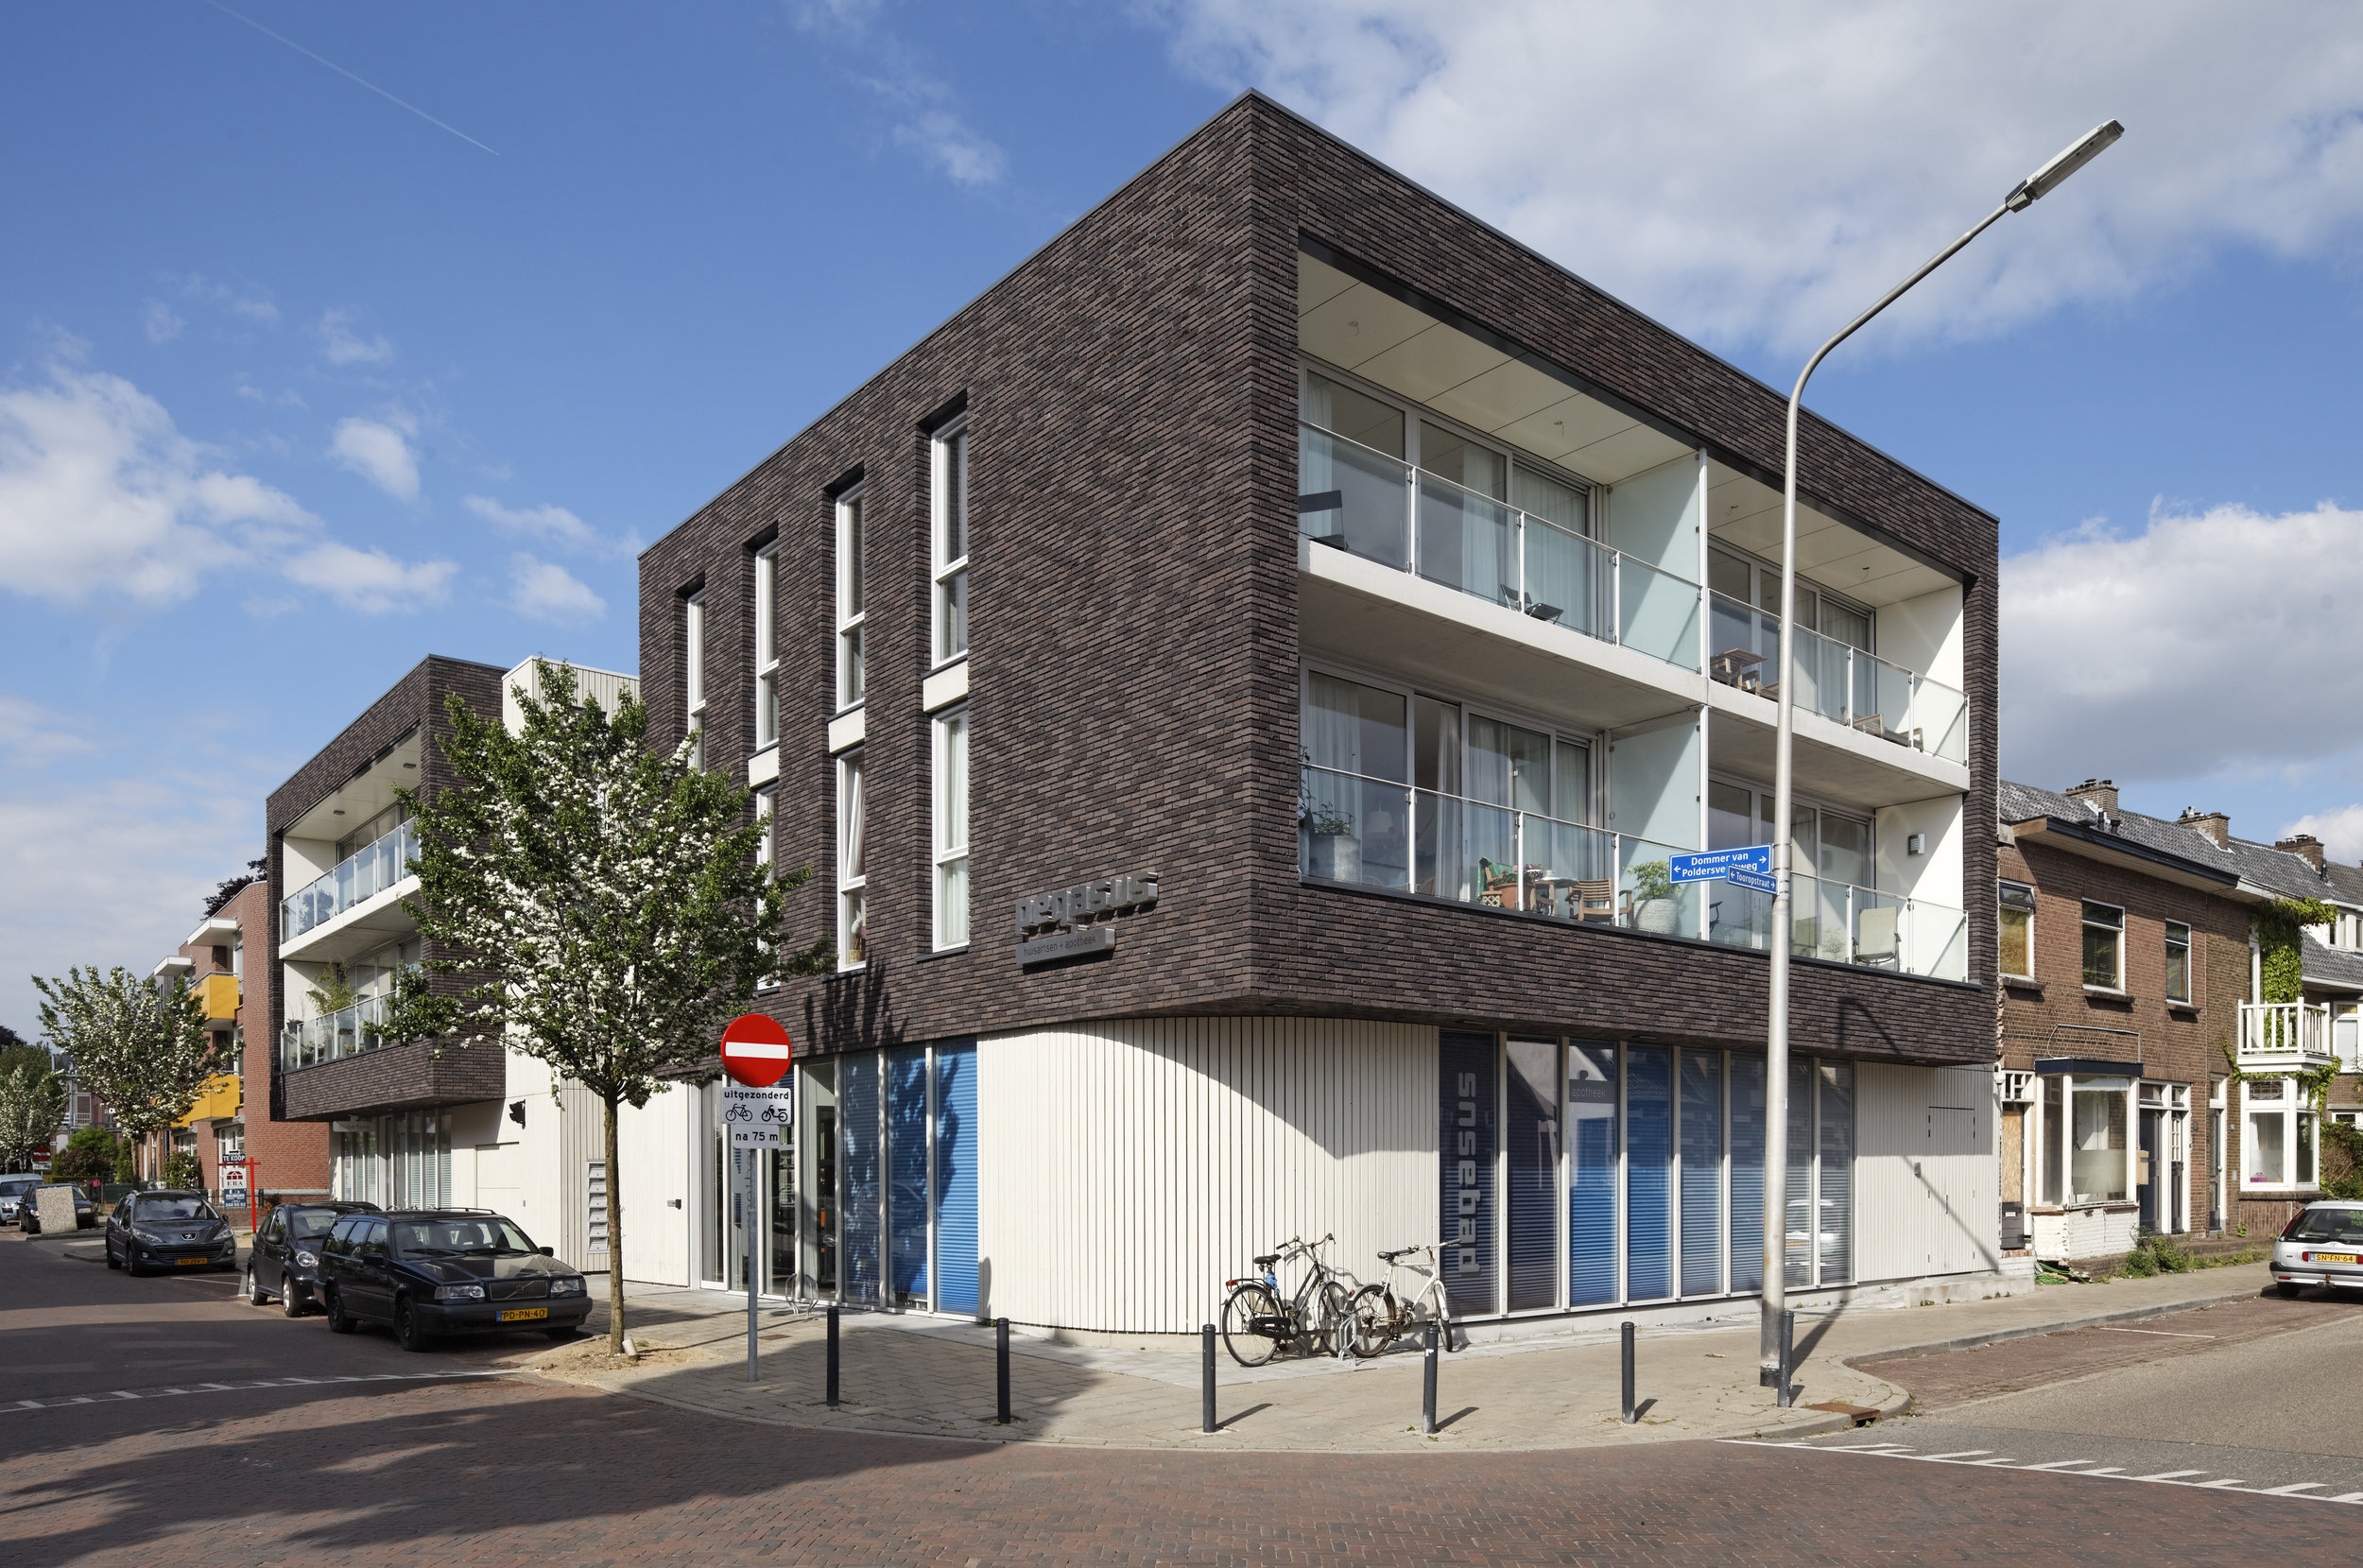 the corner of the ground floor is rounded off allowing a gentle flow from one street to the other